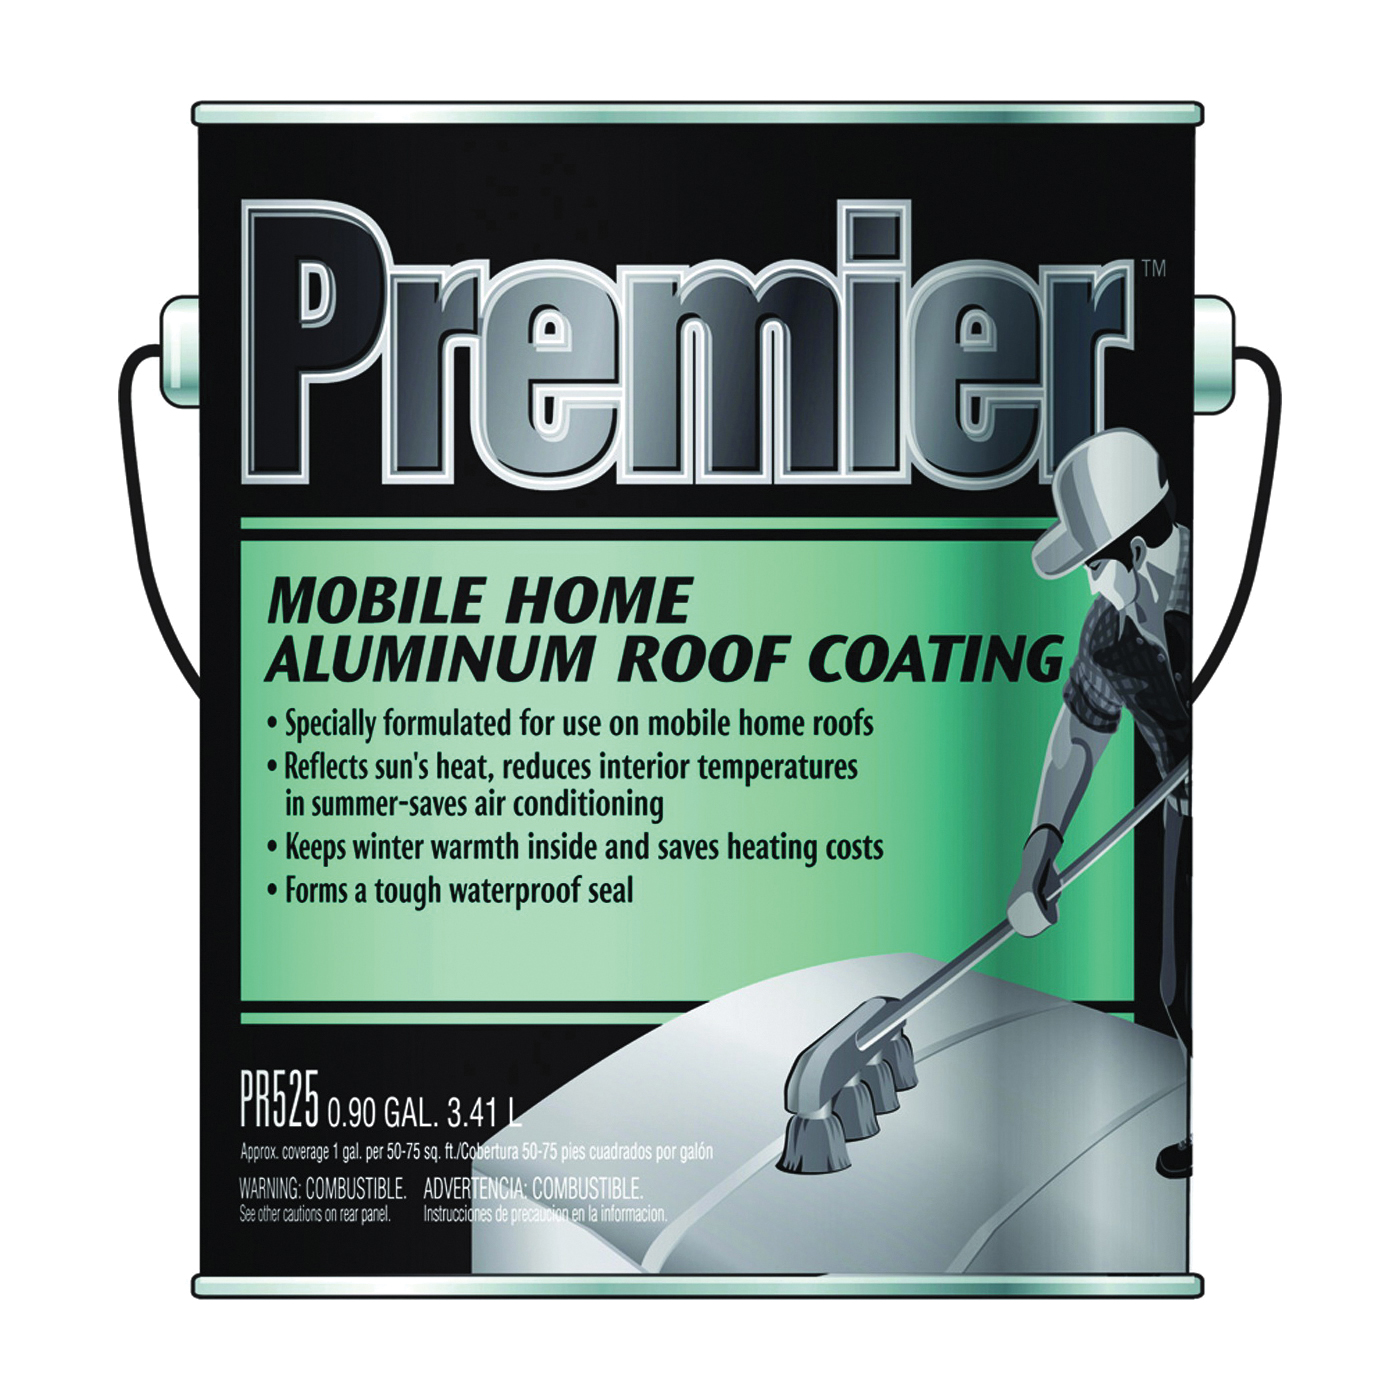 Picture of Henry PR525042 Aluminum Roof Coating, Silver, 3.41 L, Can, Liquid